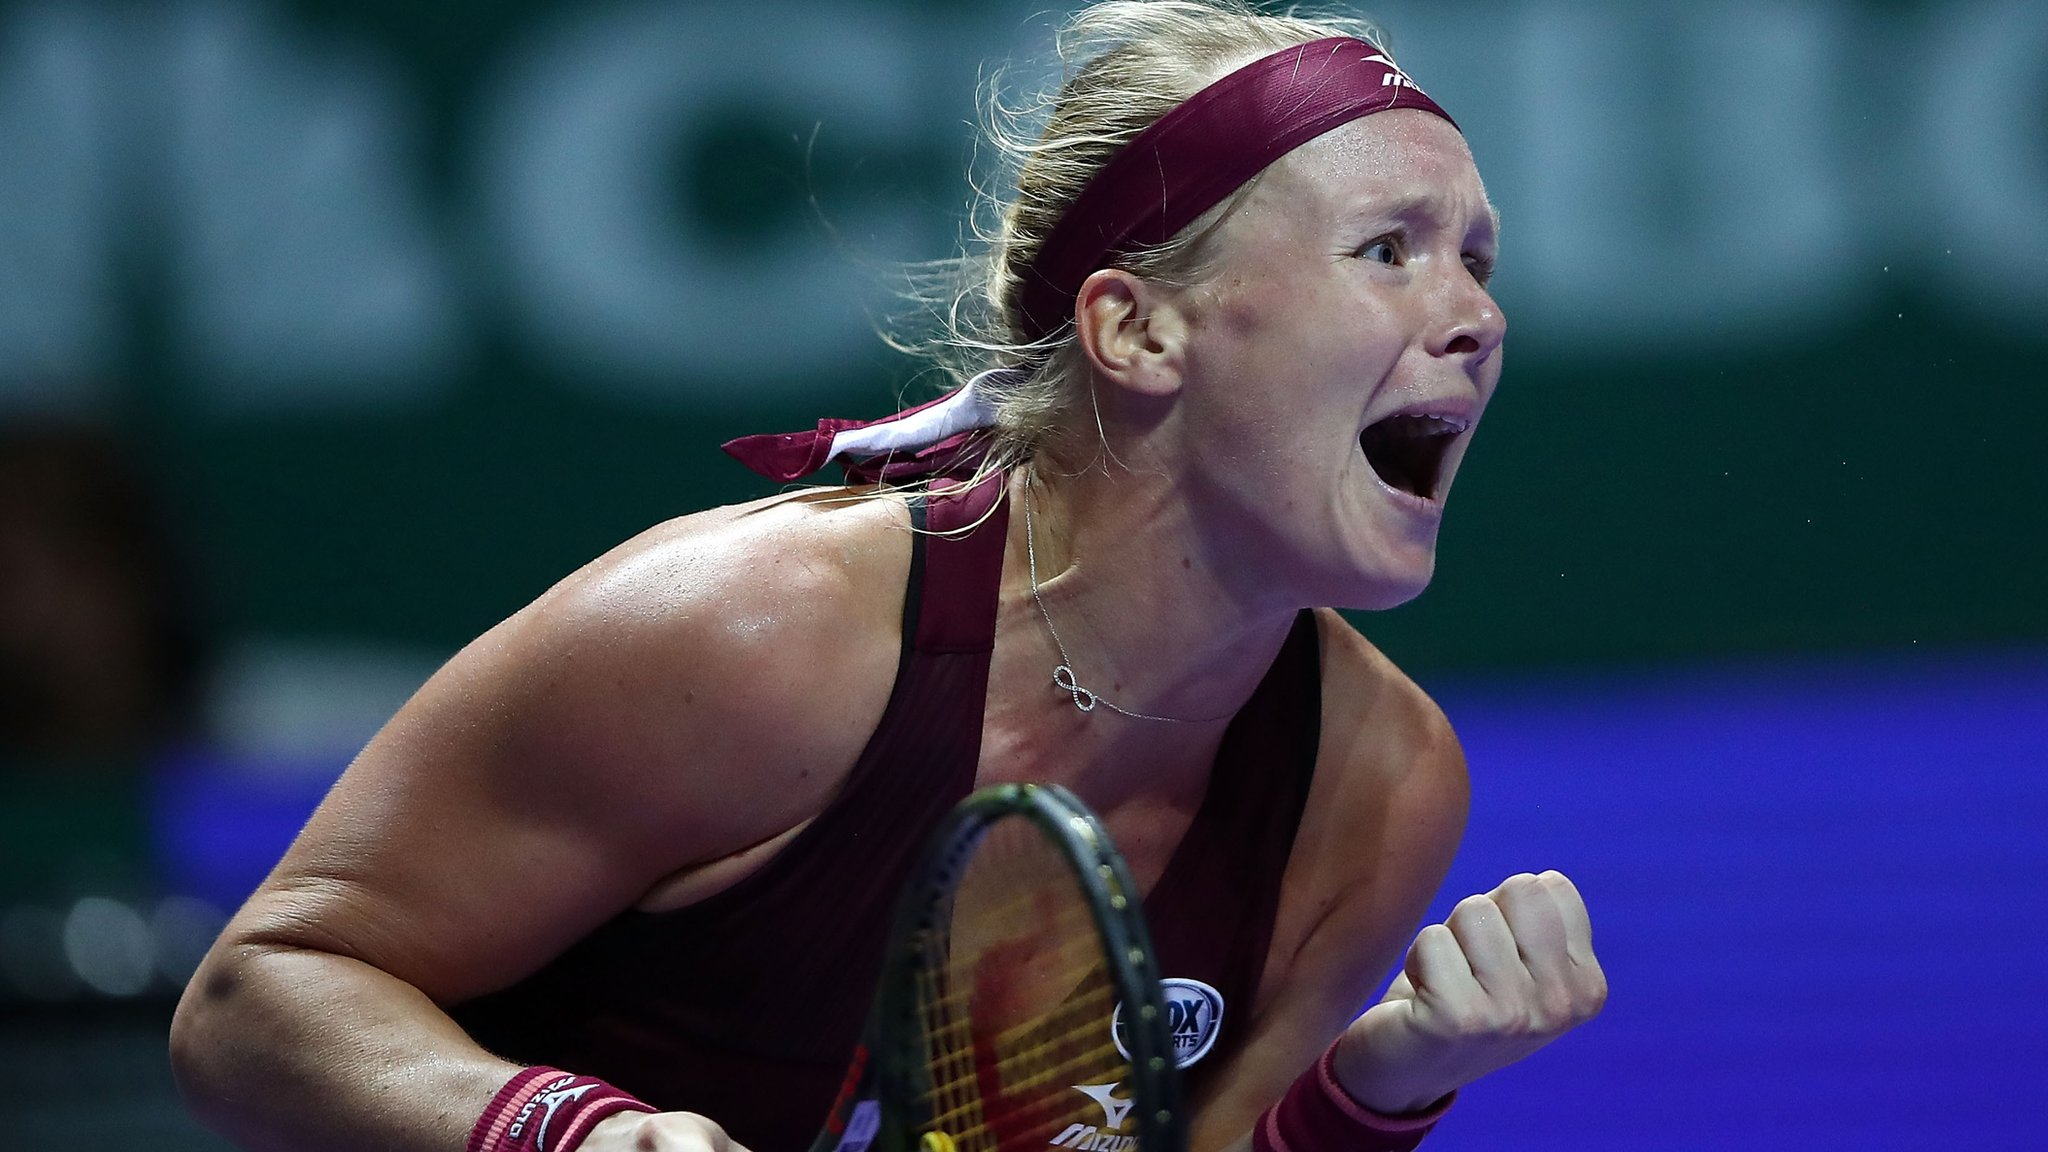 Bertens stuns Kerber in thrilling final set at WTA Finals